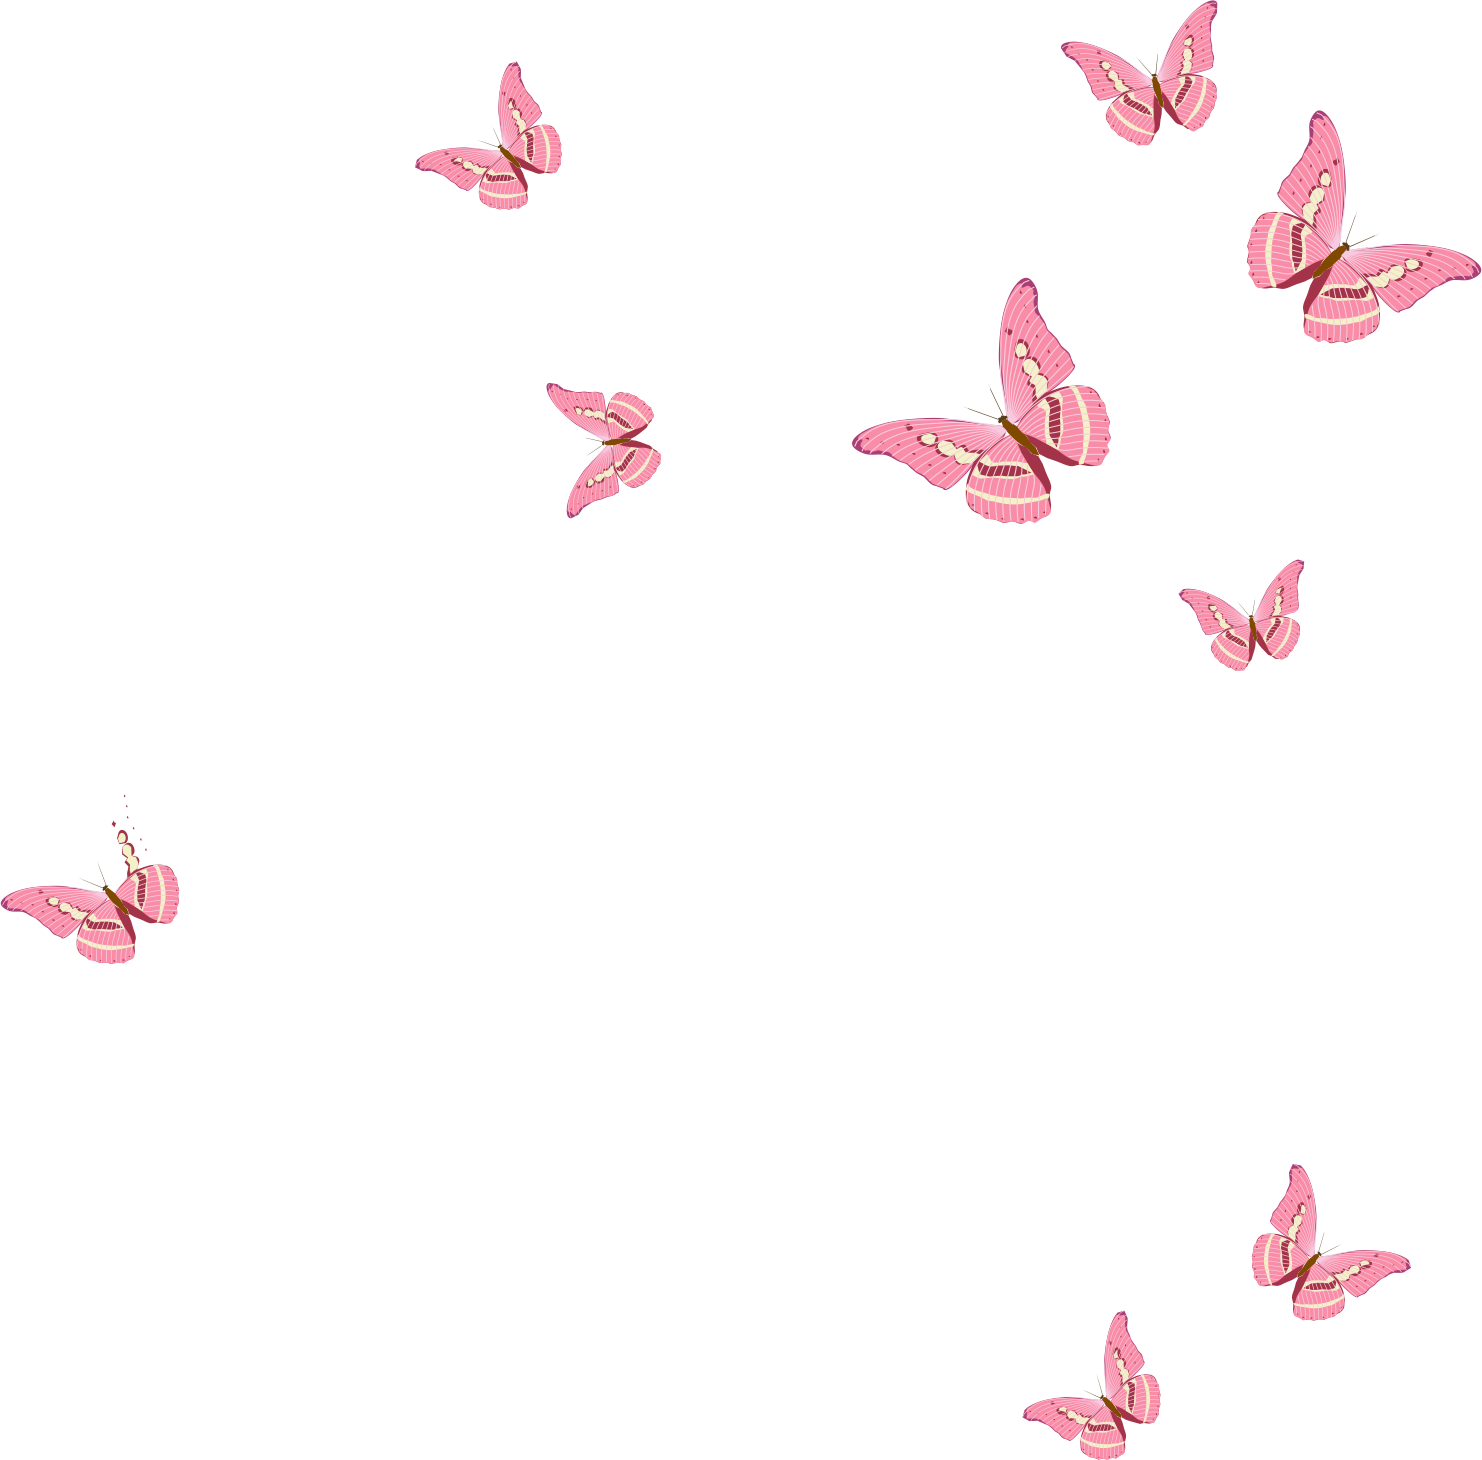 Millions Of Png Images Backgrounds And Vectors For Free Download Pngtree Butterfly Wallpaper Iphone Pink Art Butterfly Background